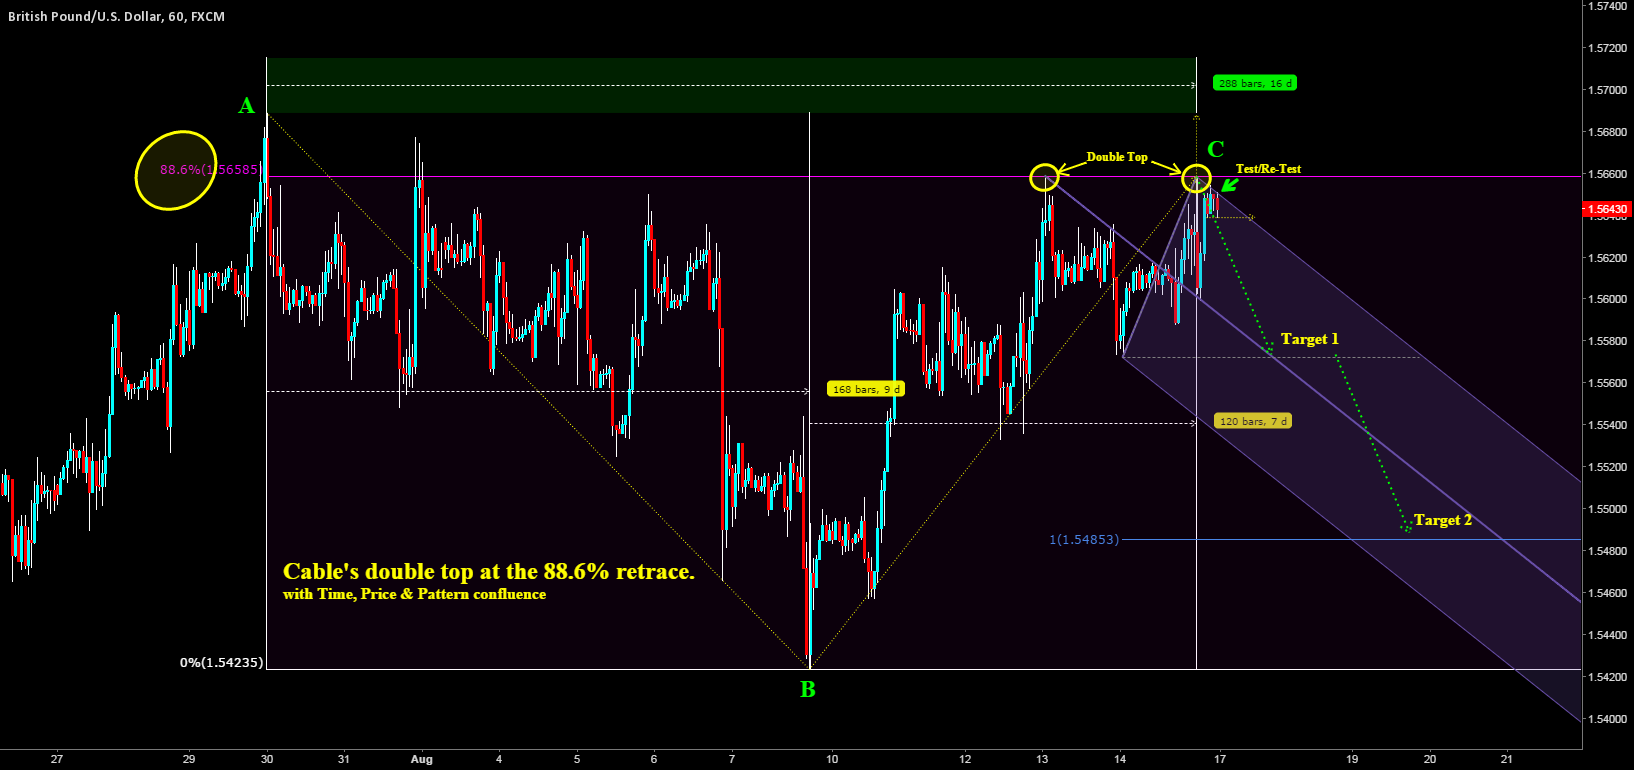 Cable's double top at a perfect 88.6% retrace